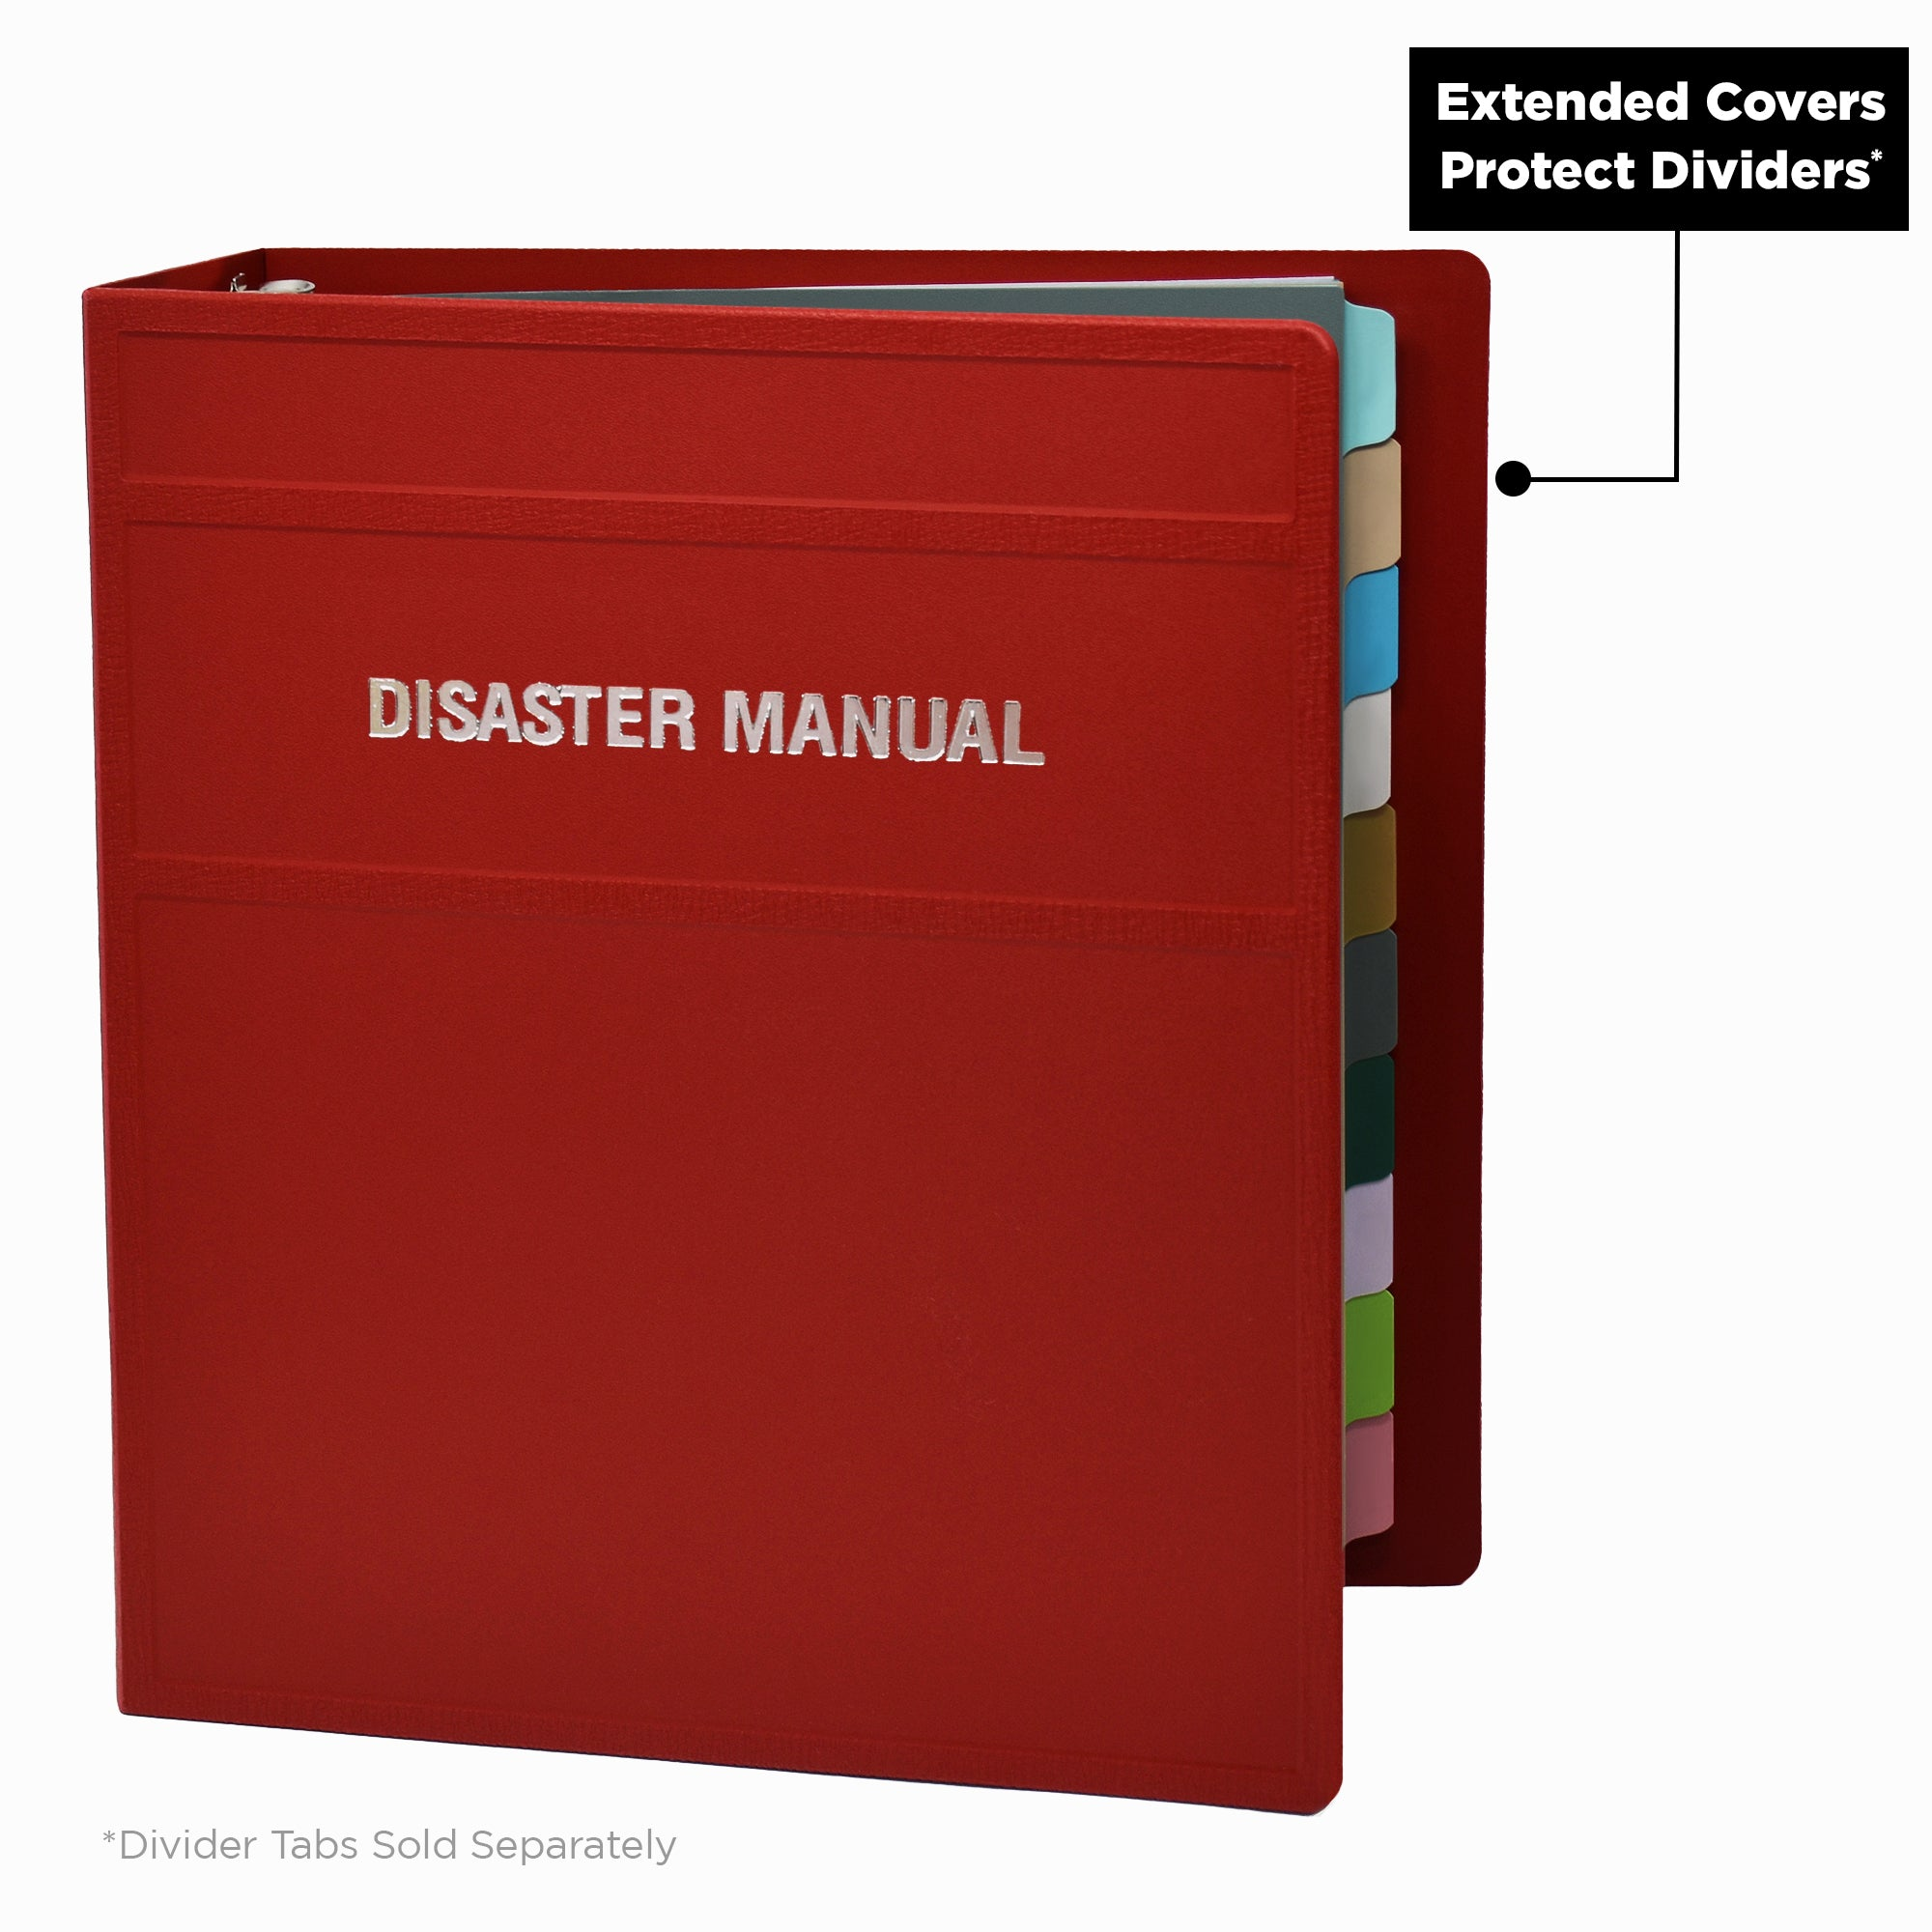 Heavy Duty 3-Ring Binder for Disaster Manuals - Side Opening